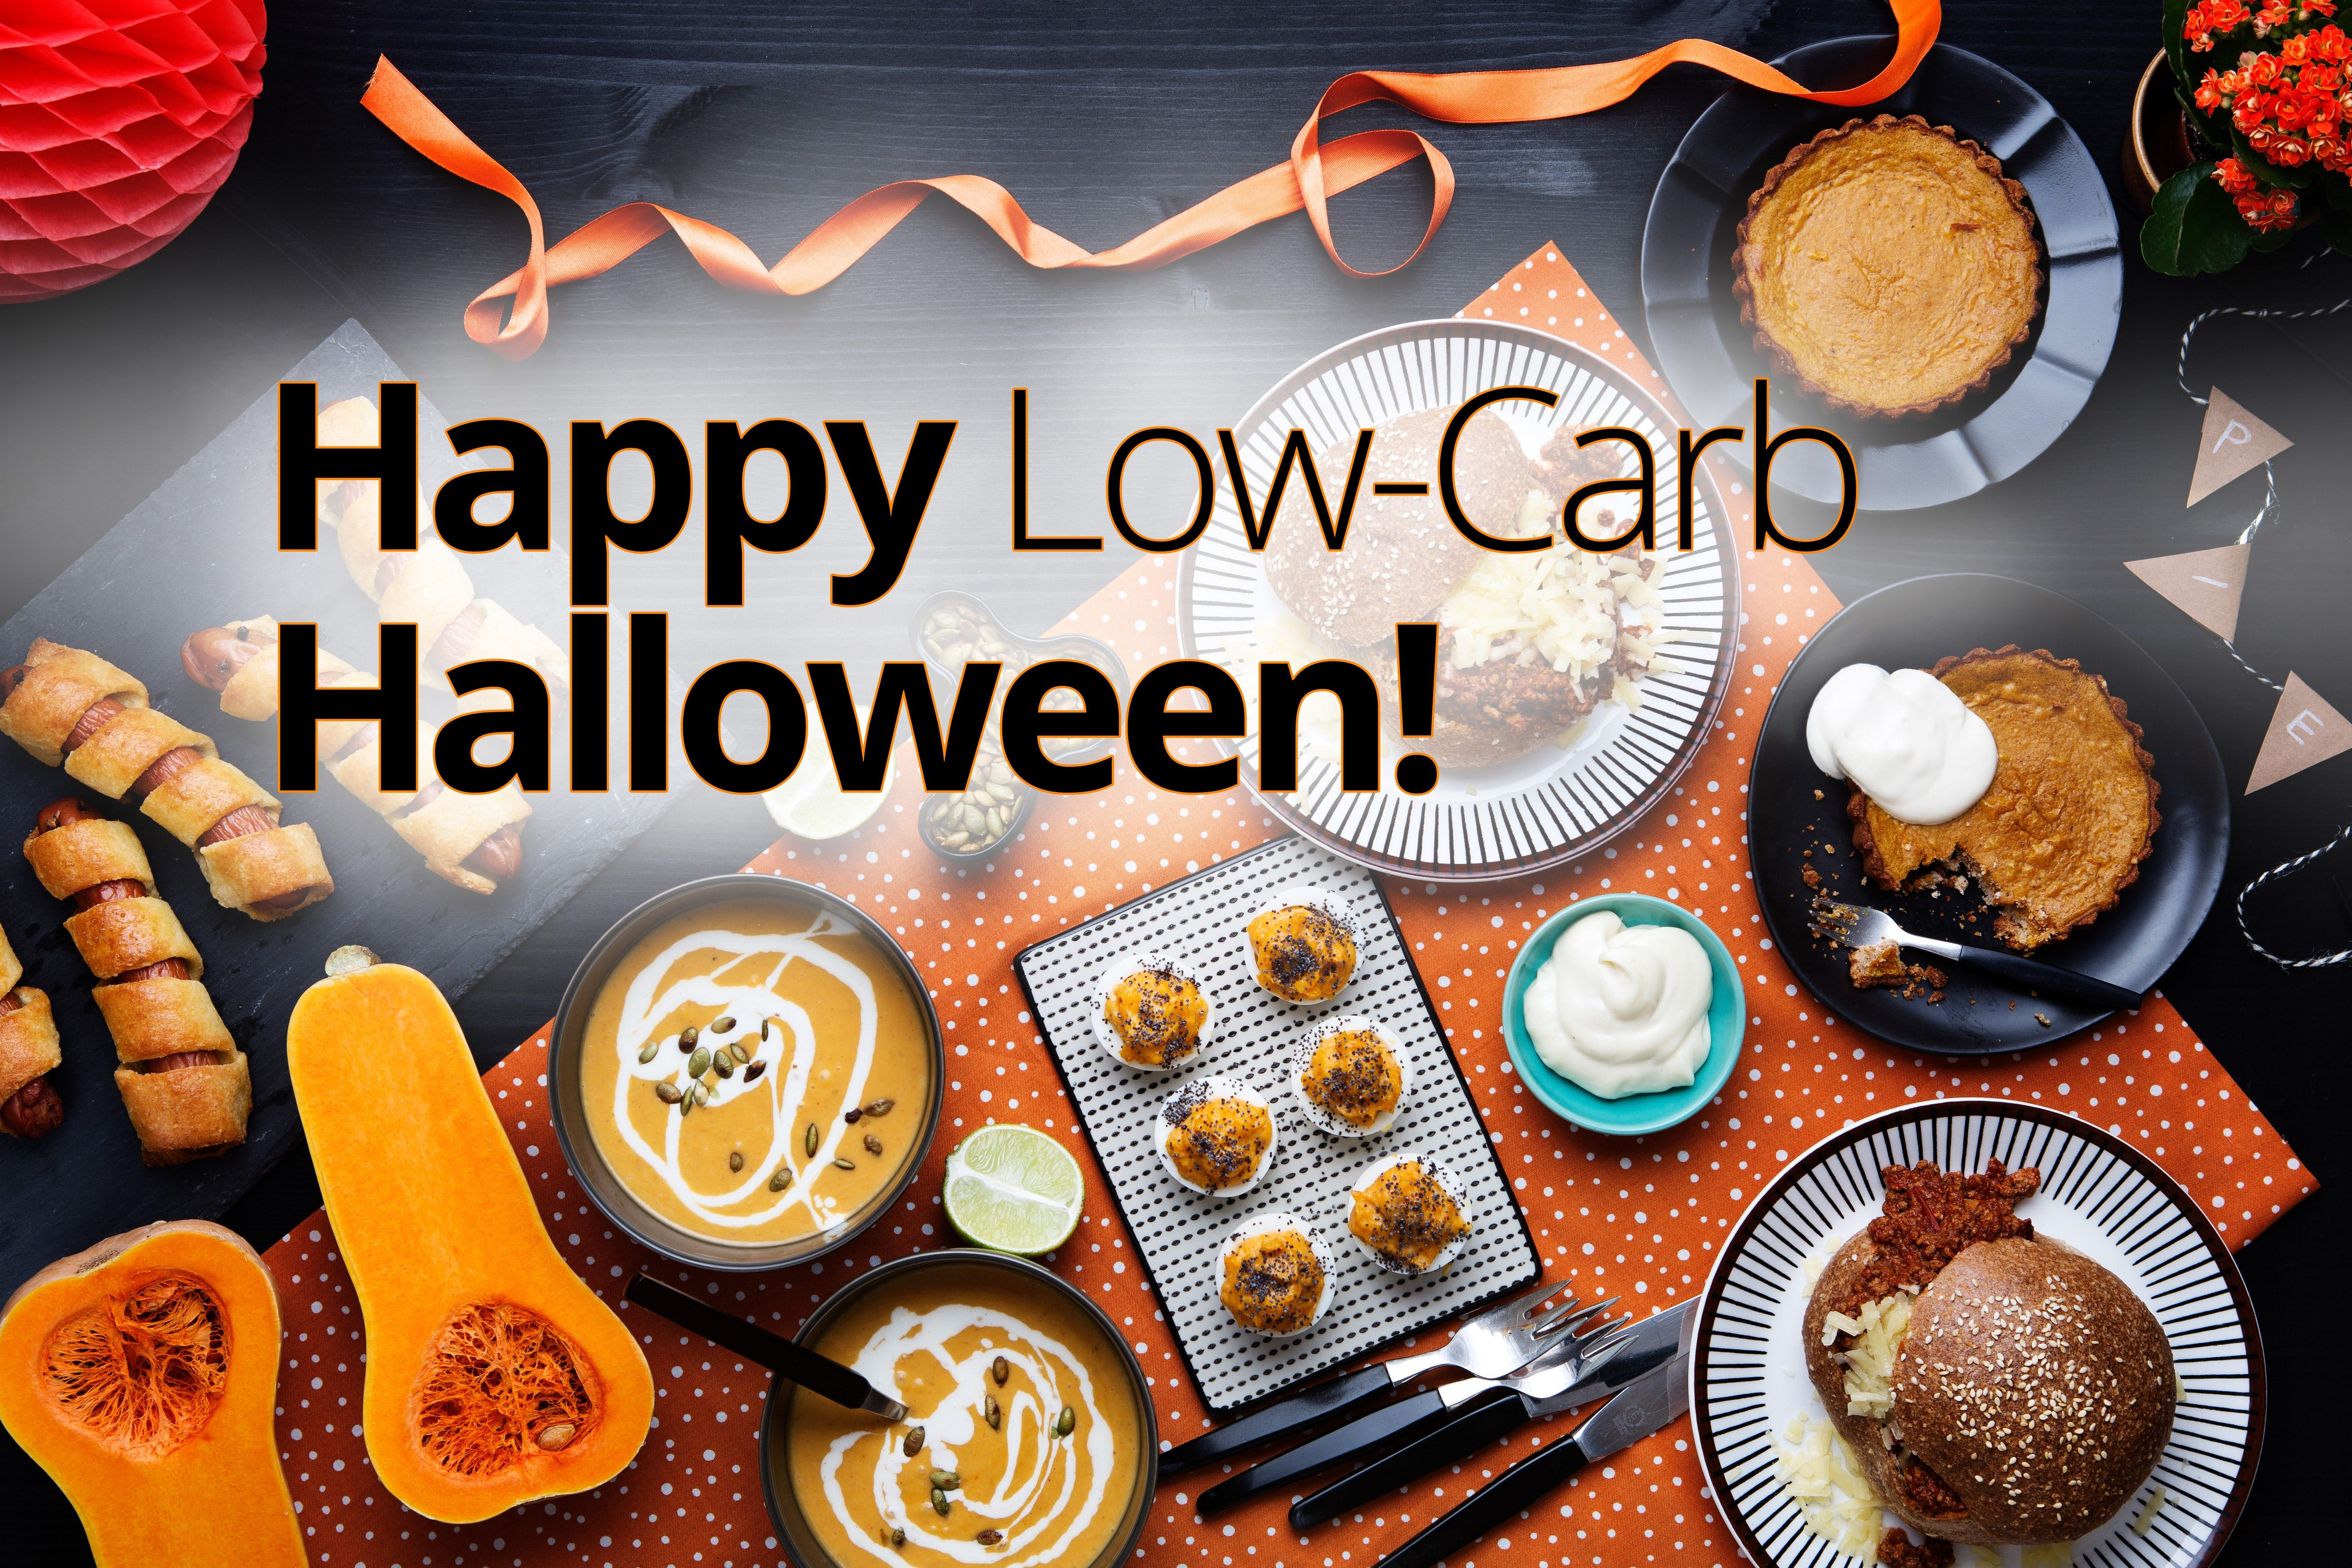 Low-carb halloween recipes